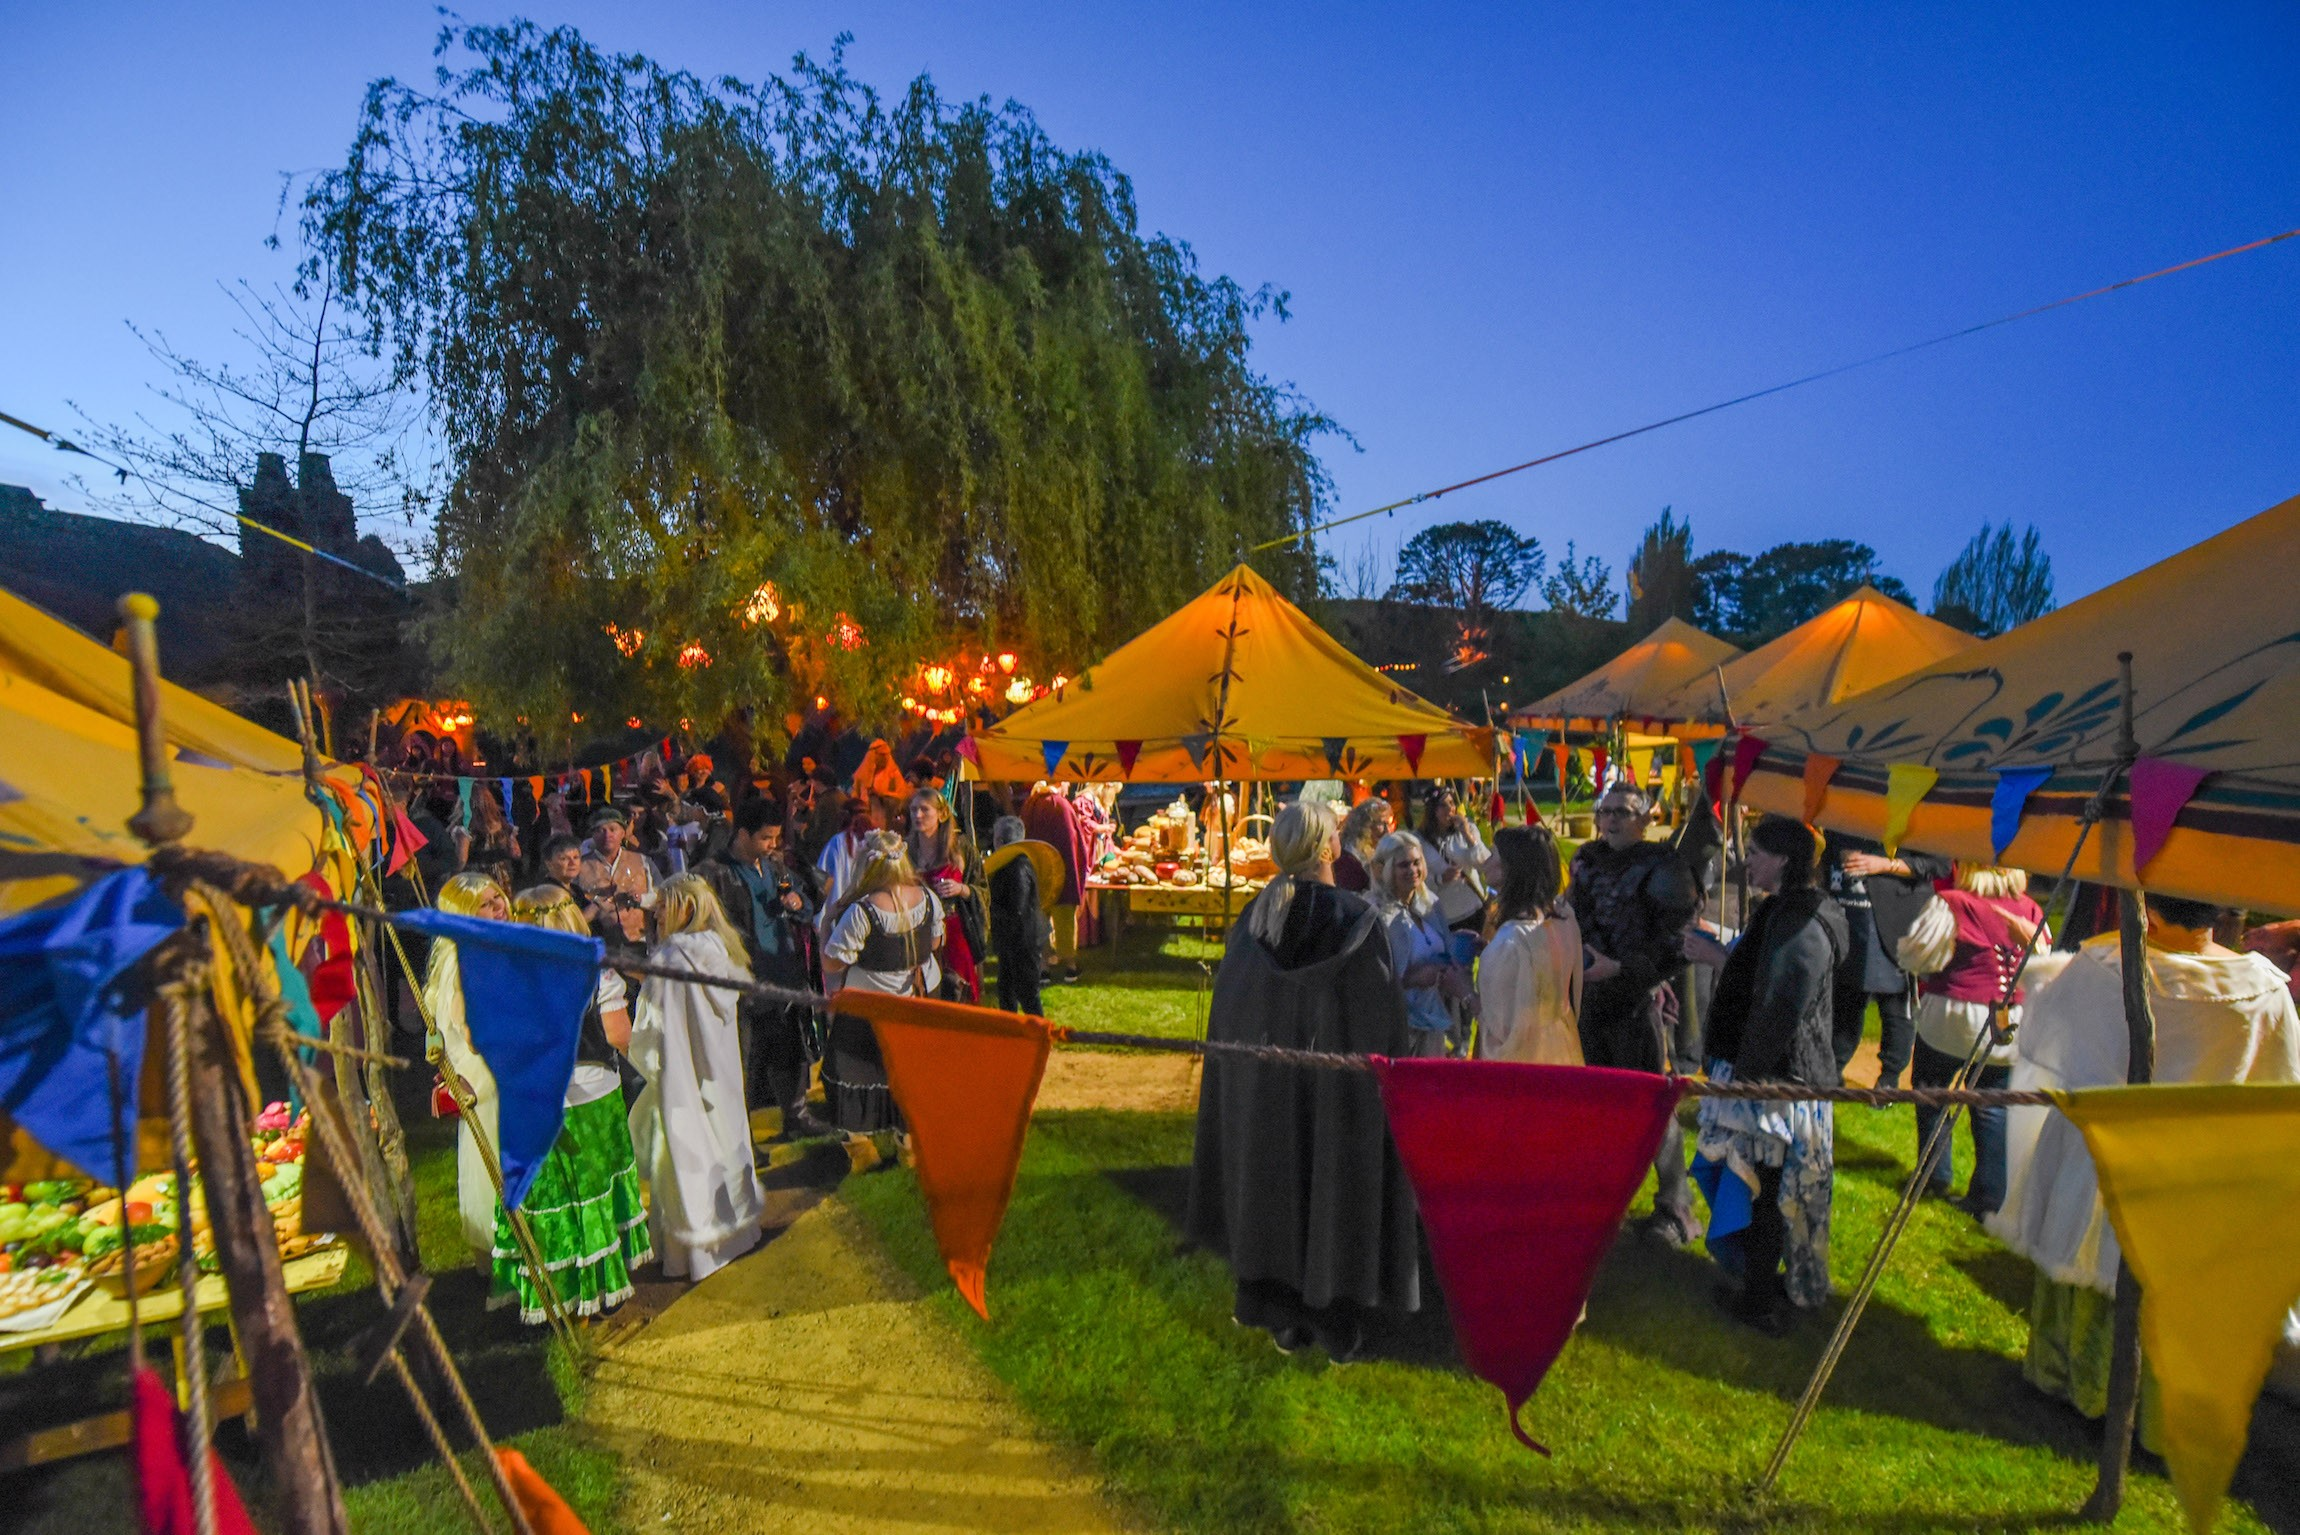 Summer Harvest Festival for Hobbiton Movie Set